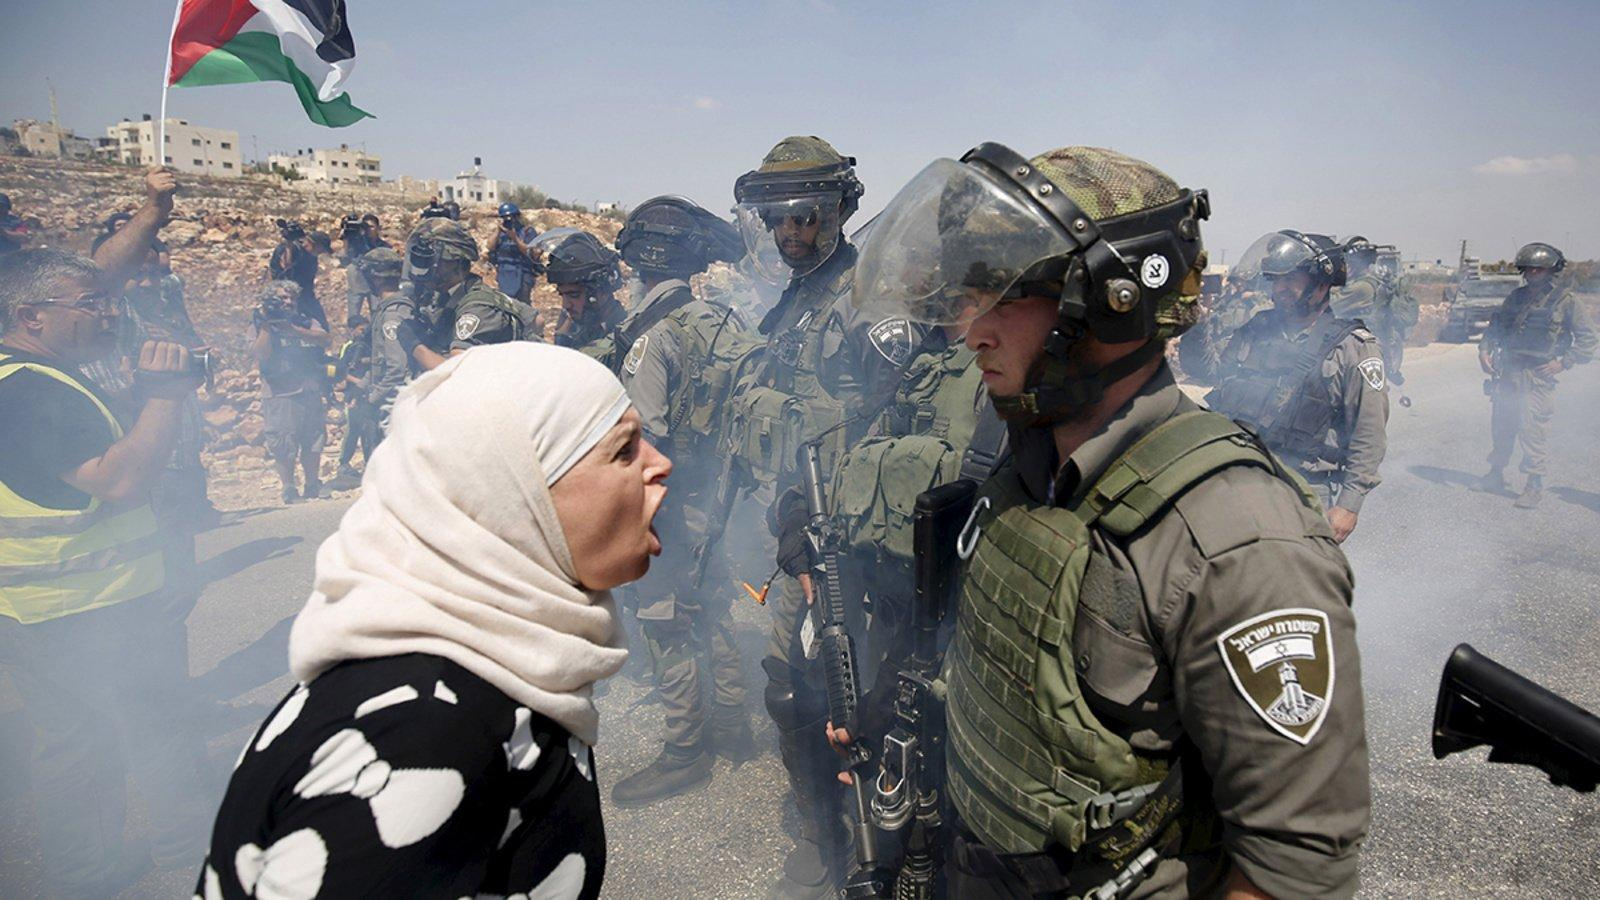 A Palestinian woman argues with an Israeli border policeman in the West Bank.